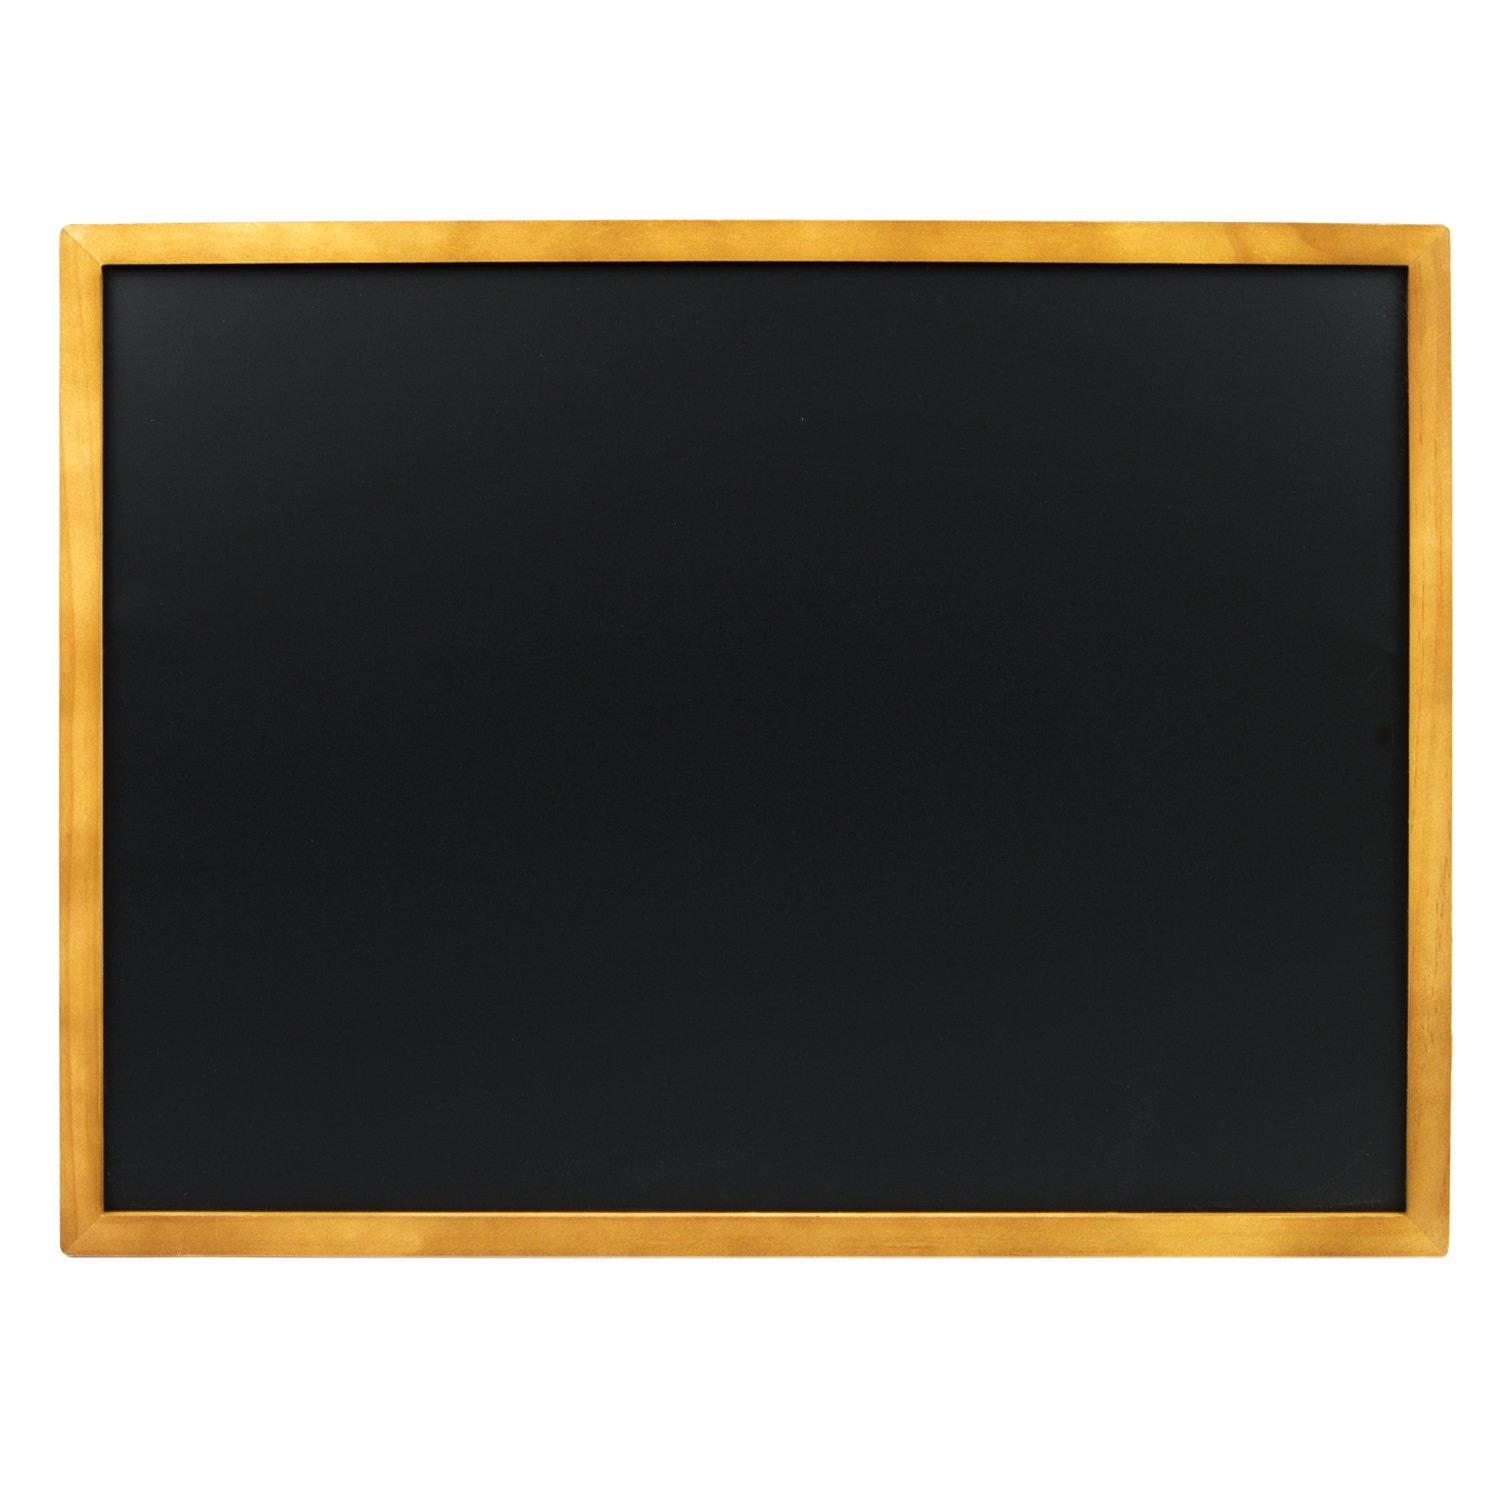 VersaChalk Porcelain Steel Wall Mounted Chalkboard with Magnetic Surface - 24''x 18'' with Circular Clip Hangers Dual Purpose Sign Board